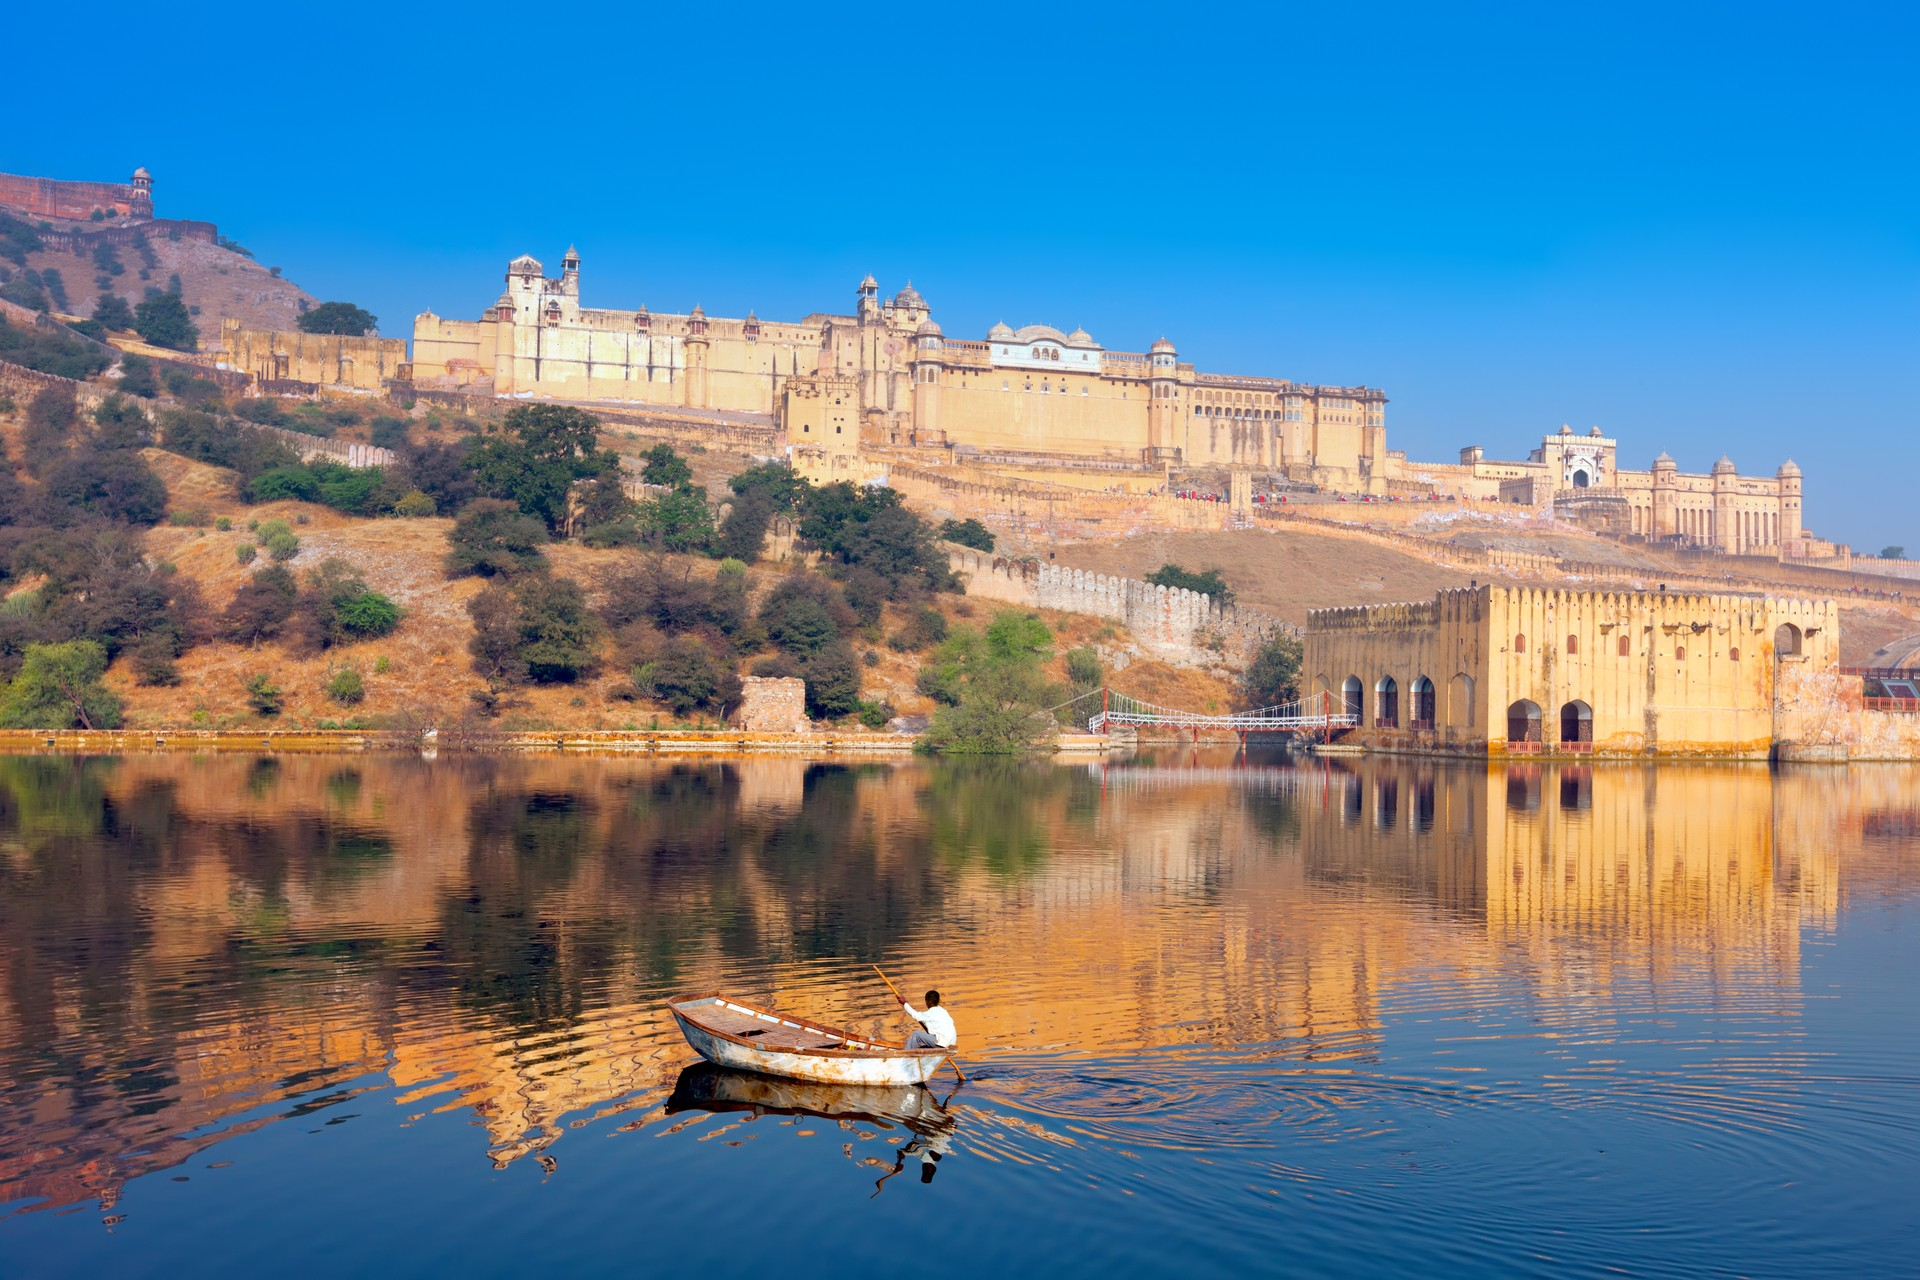 Jaipur seen from the water